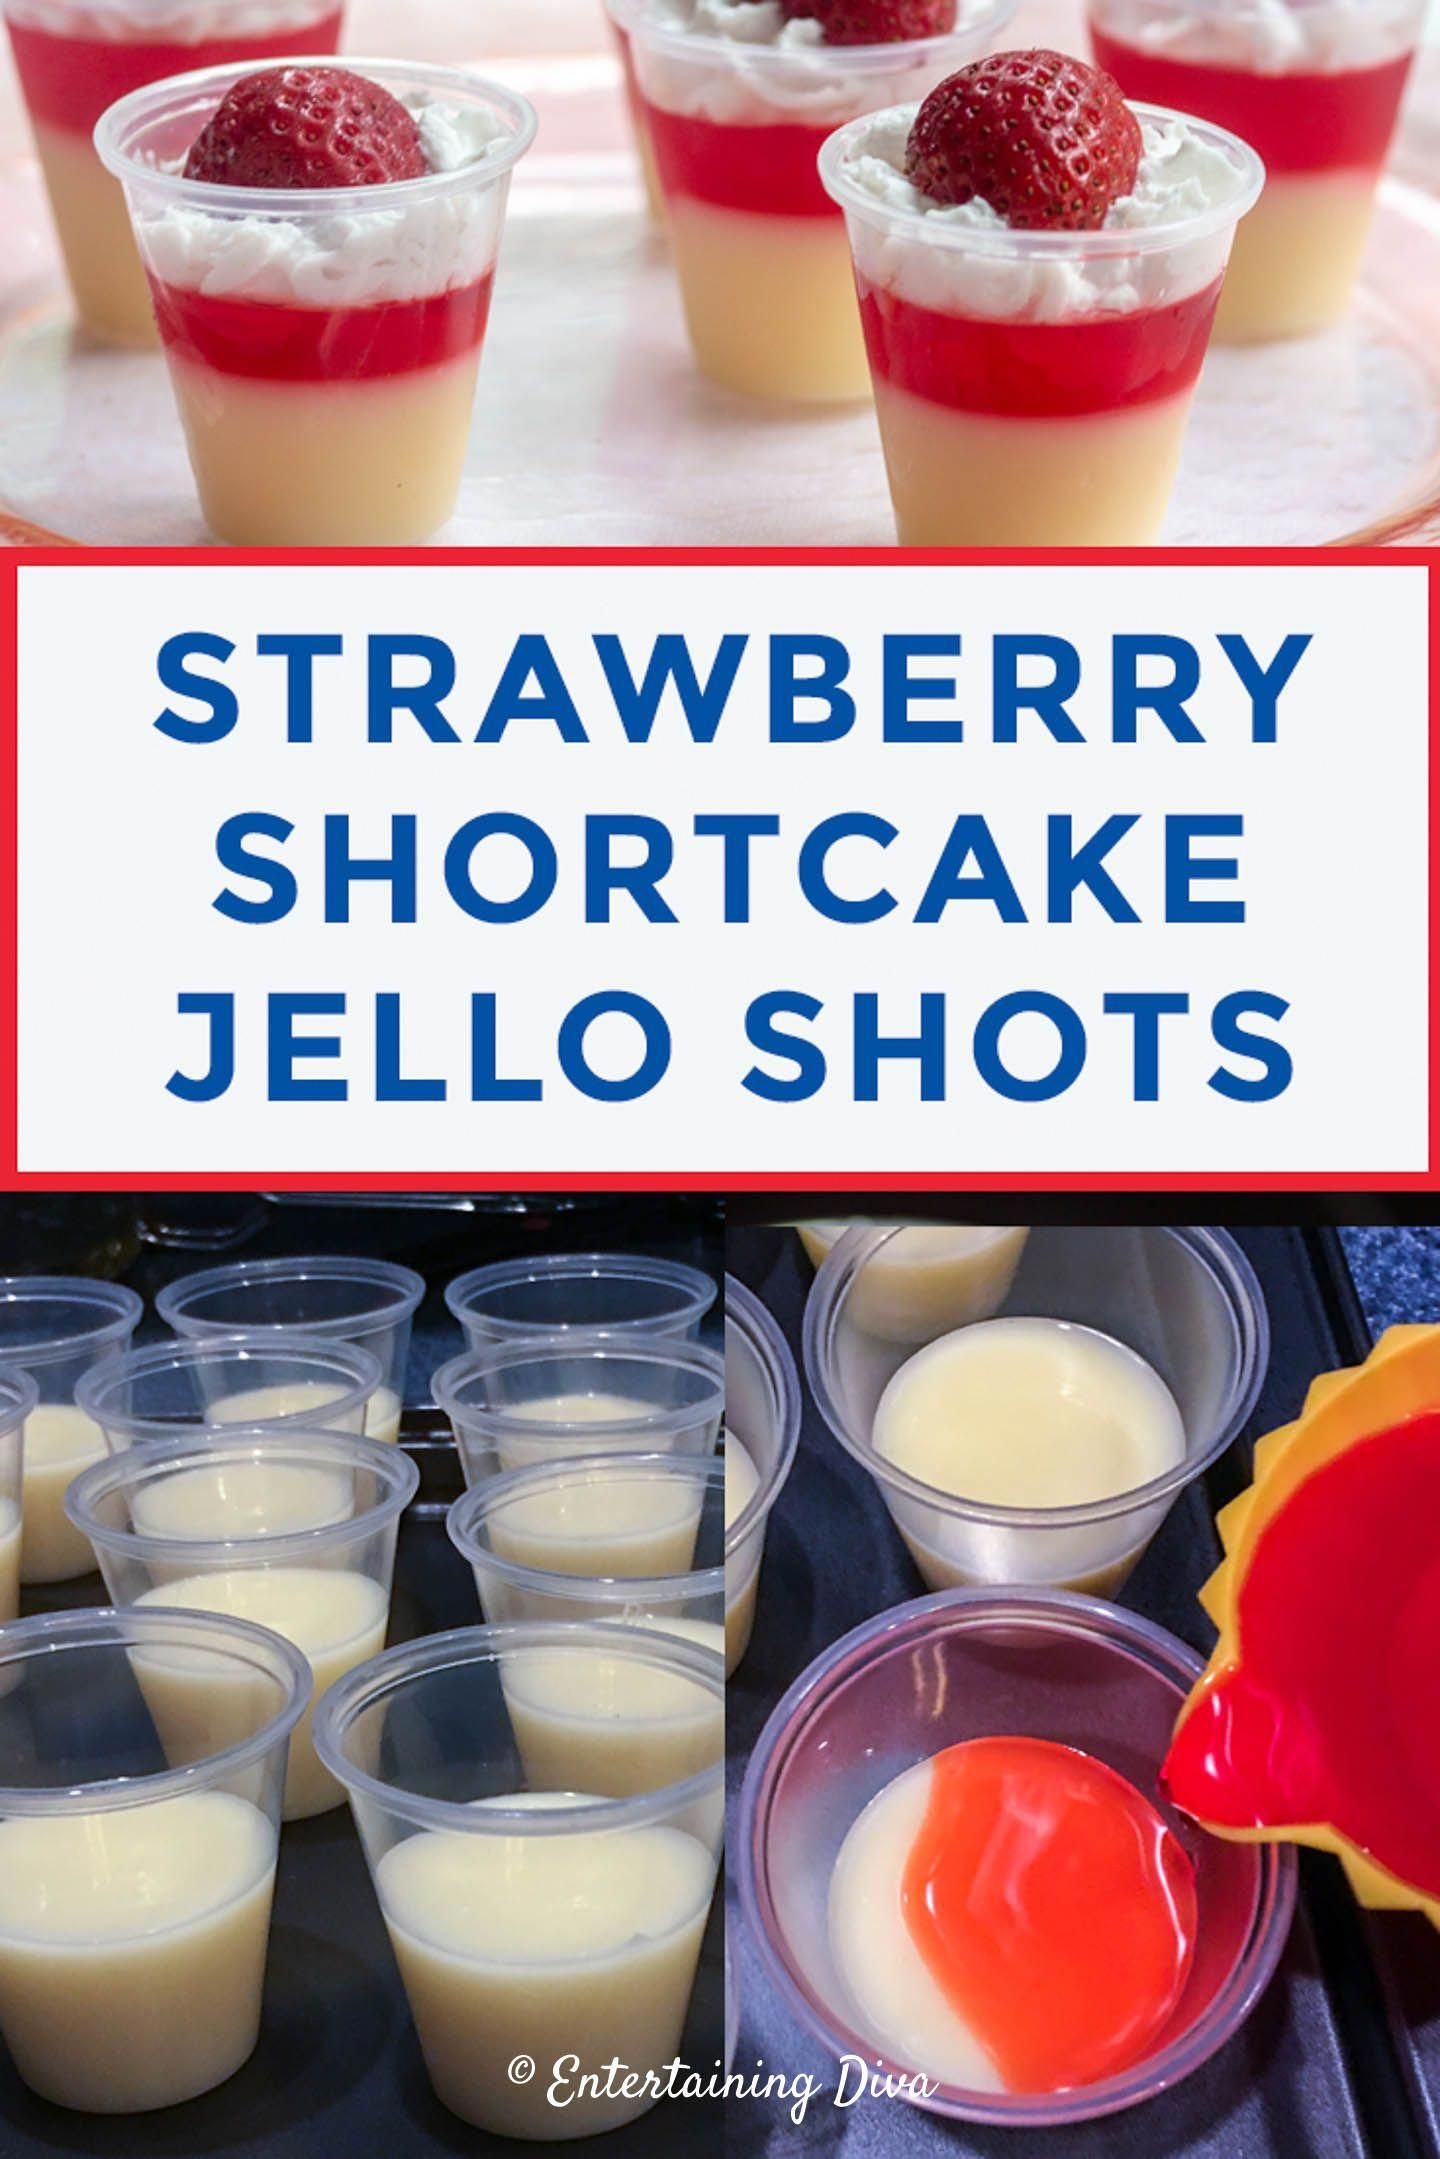 I love these strawberry shortcake jello shots made with vanilla pudding, strawberry pucker and cake vodka. They taste amazing and are perfect for a birthday party (especially in the summer). #entertainingdiva #cocktails #drinks #drink #recipe #partyideas #jelloshots #parties #strawberryshortcake #jelloshotsvodka